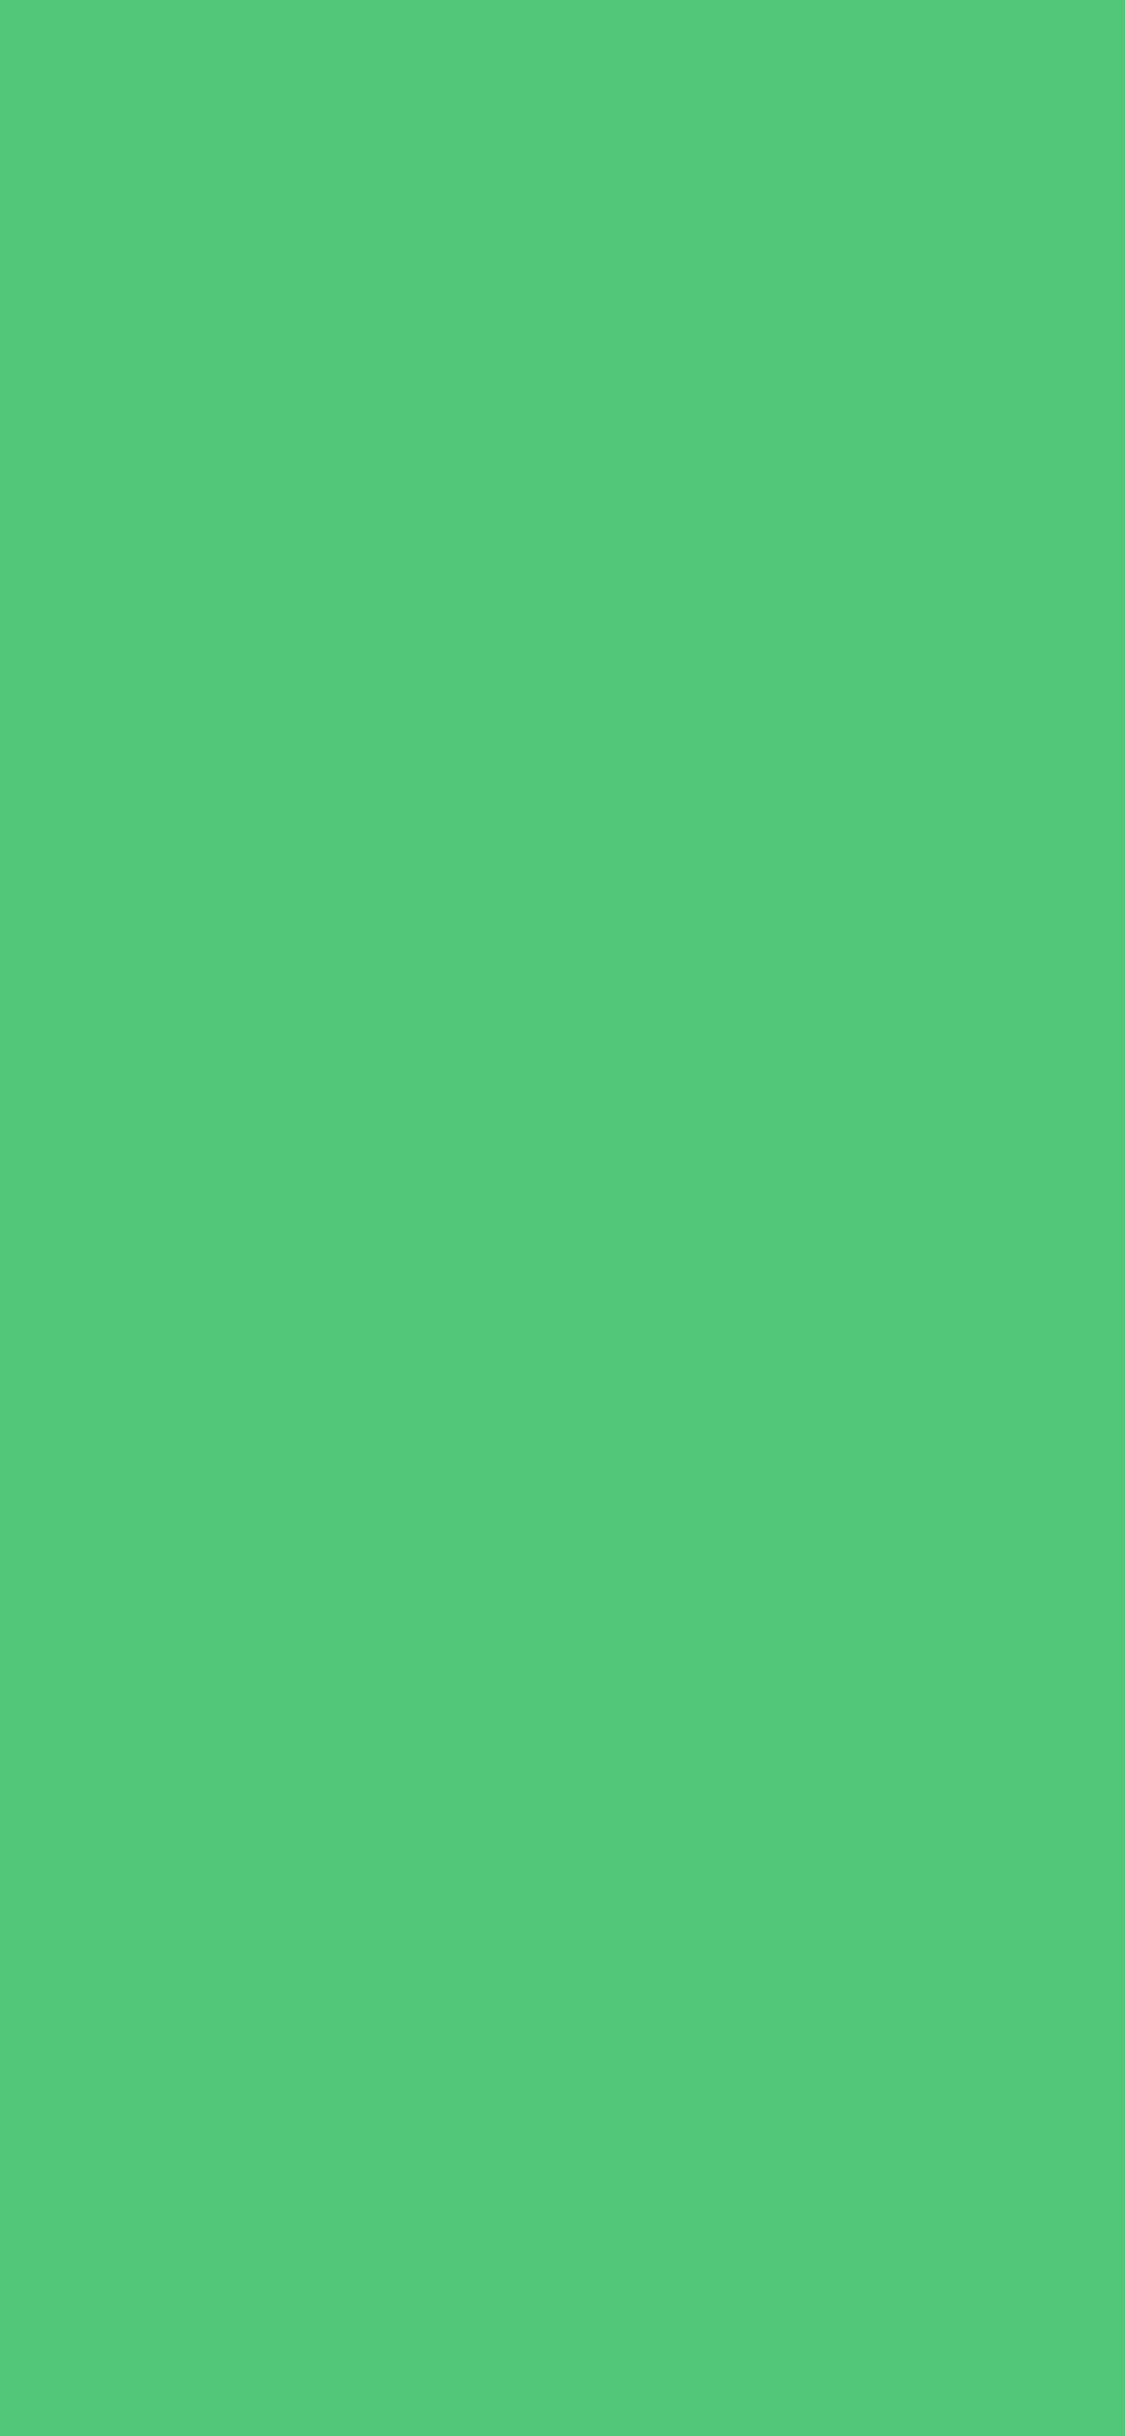 1125x2436 Emerald Solid Color Background